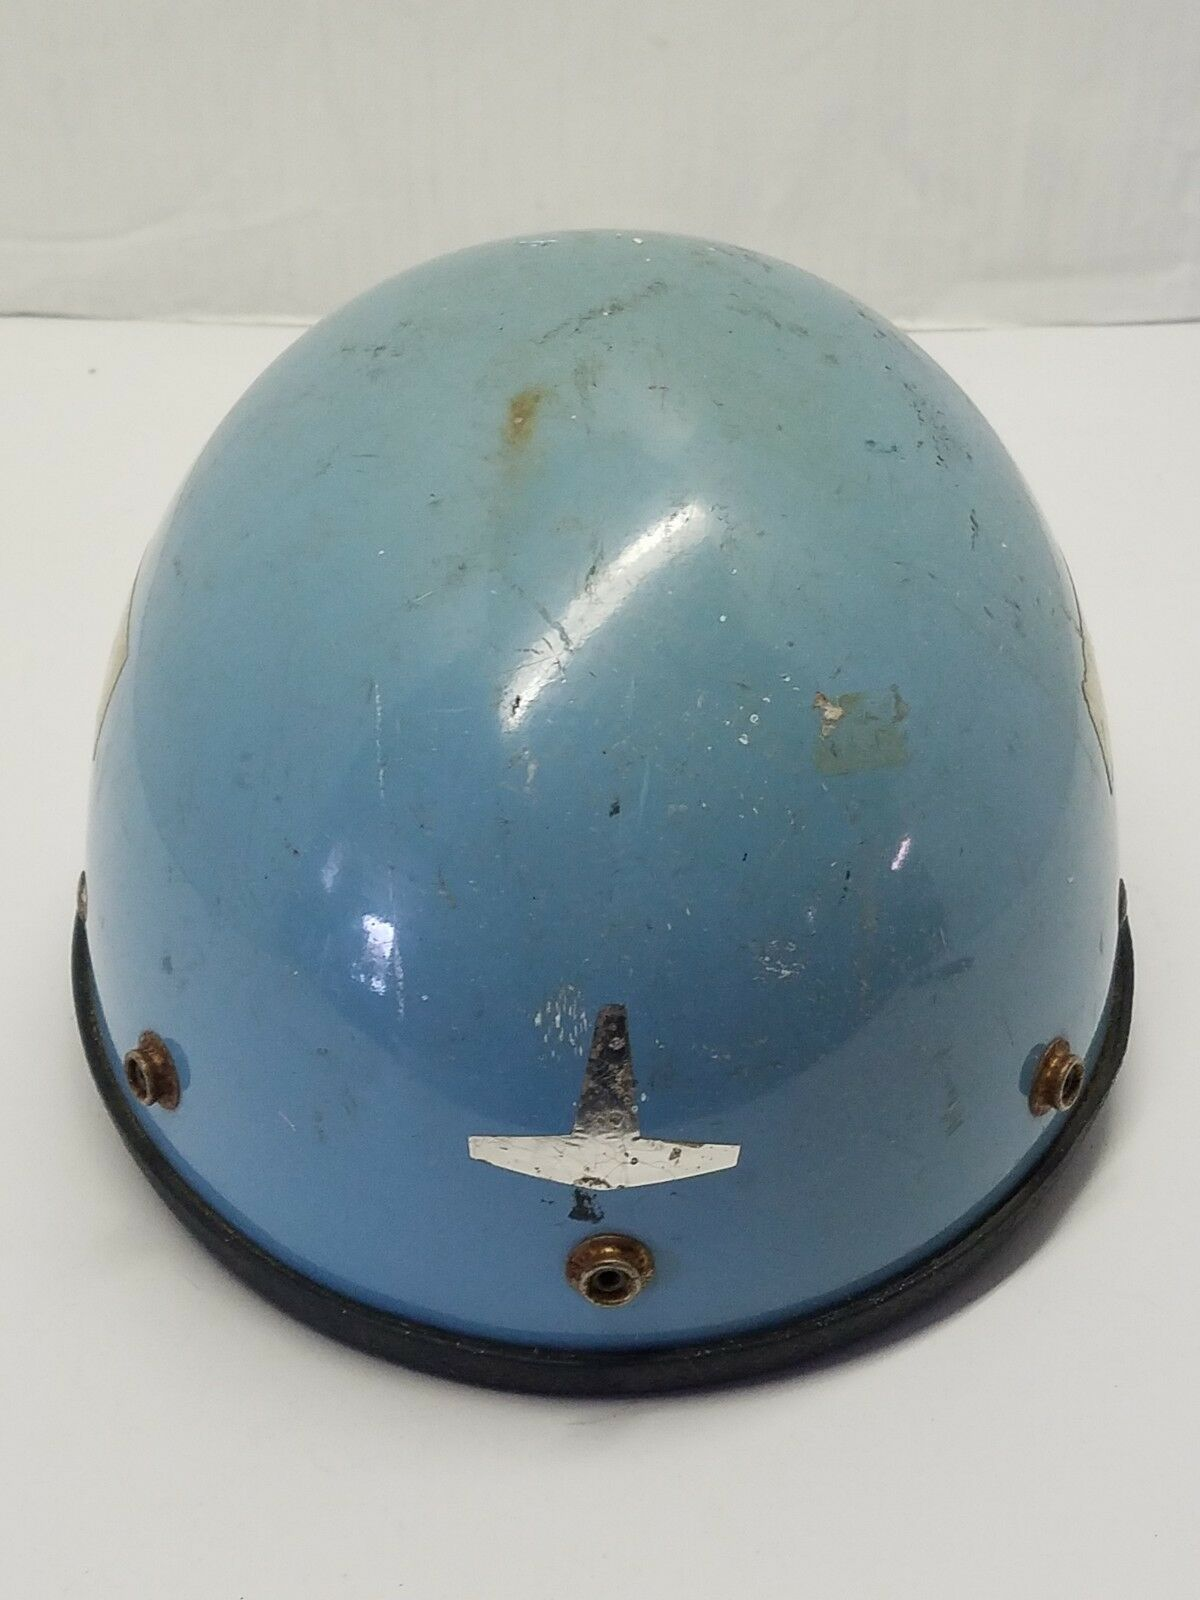 7553 Sears Buco Helmet